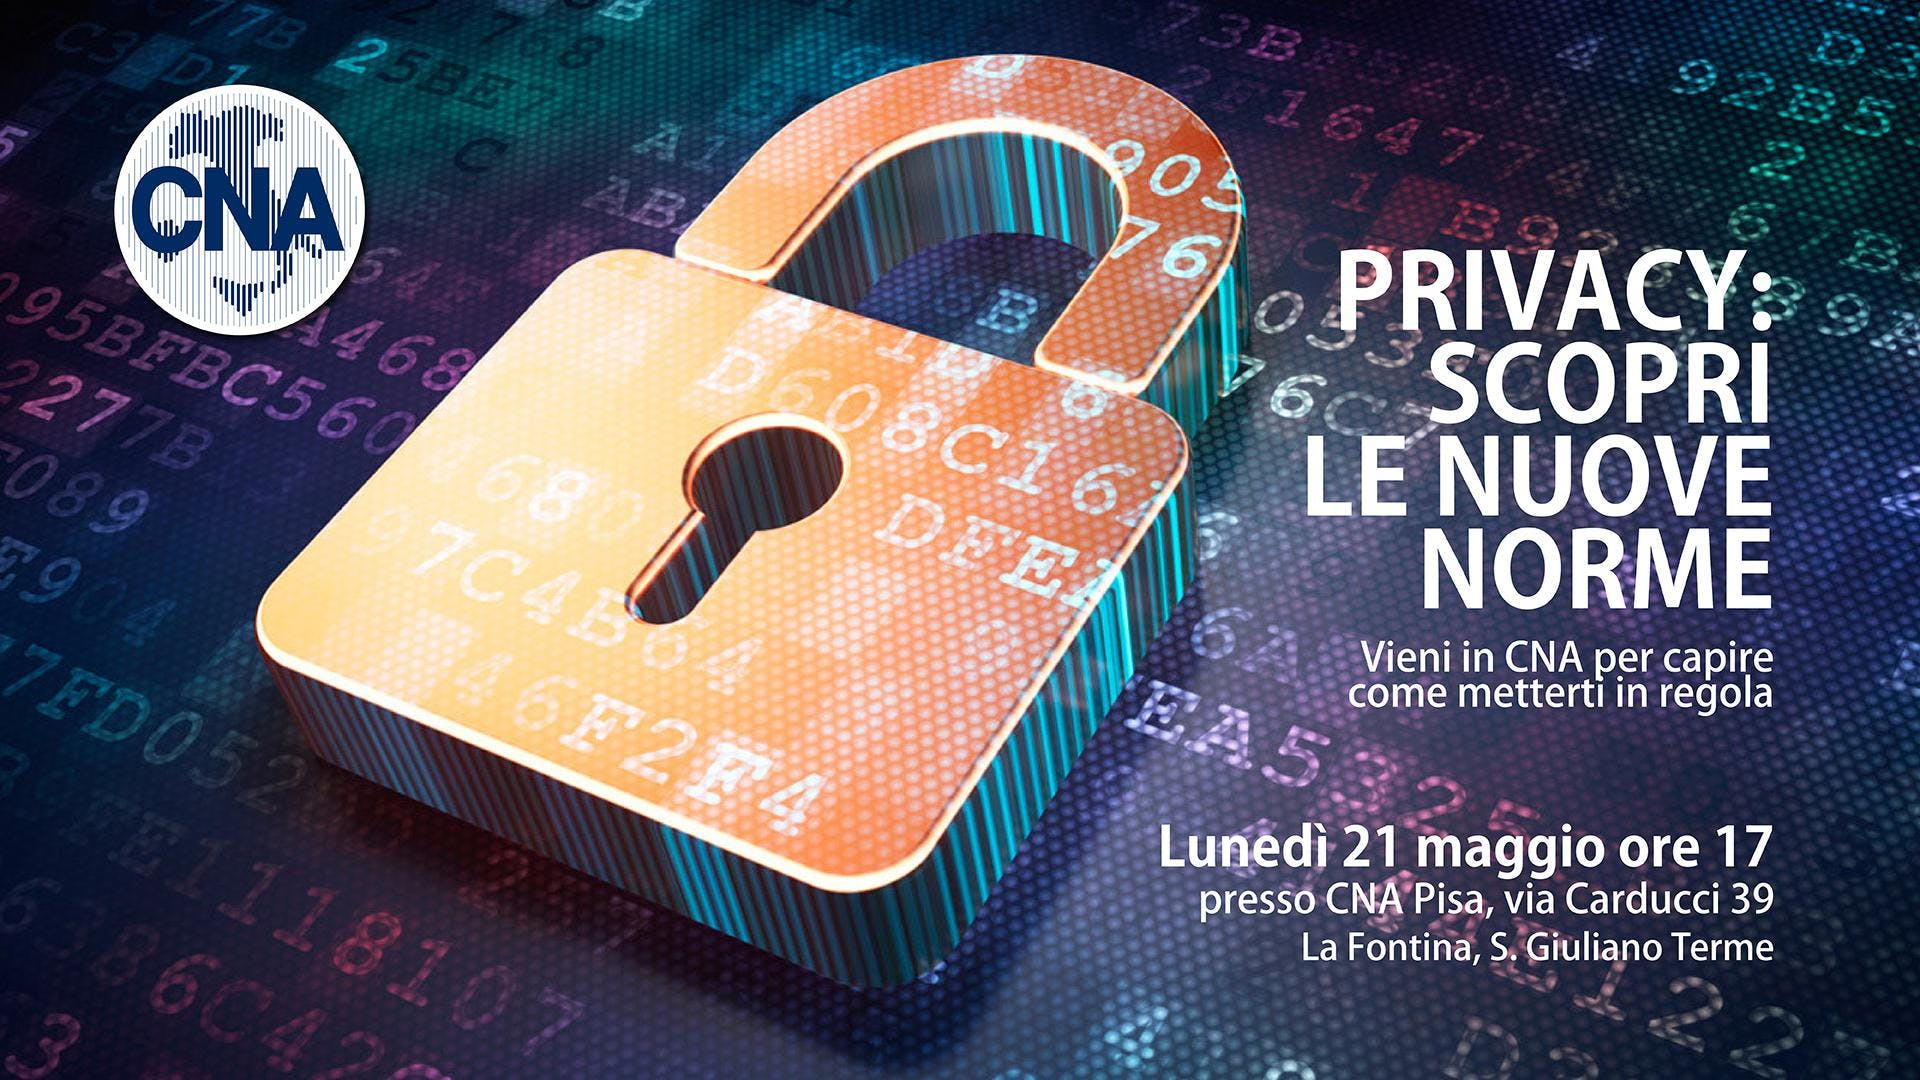 GDPR/Privacy: Seminario in CNA Pisa per scopr